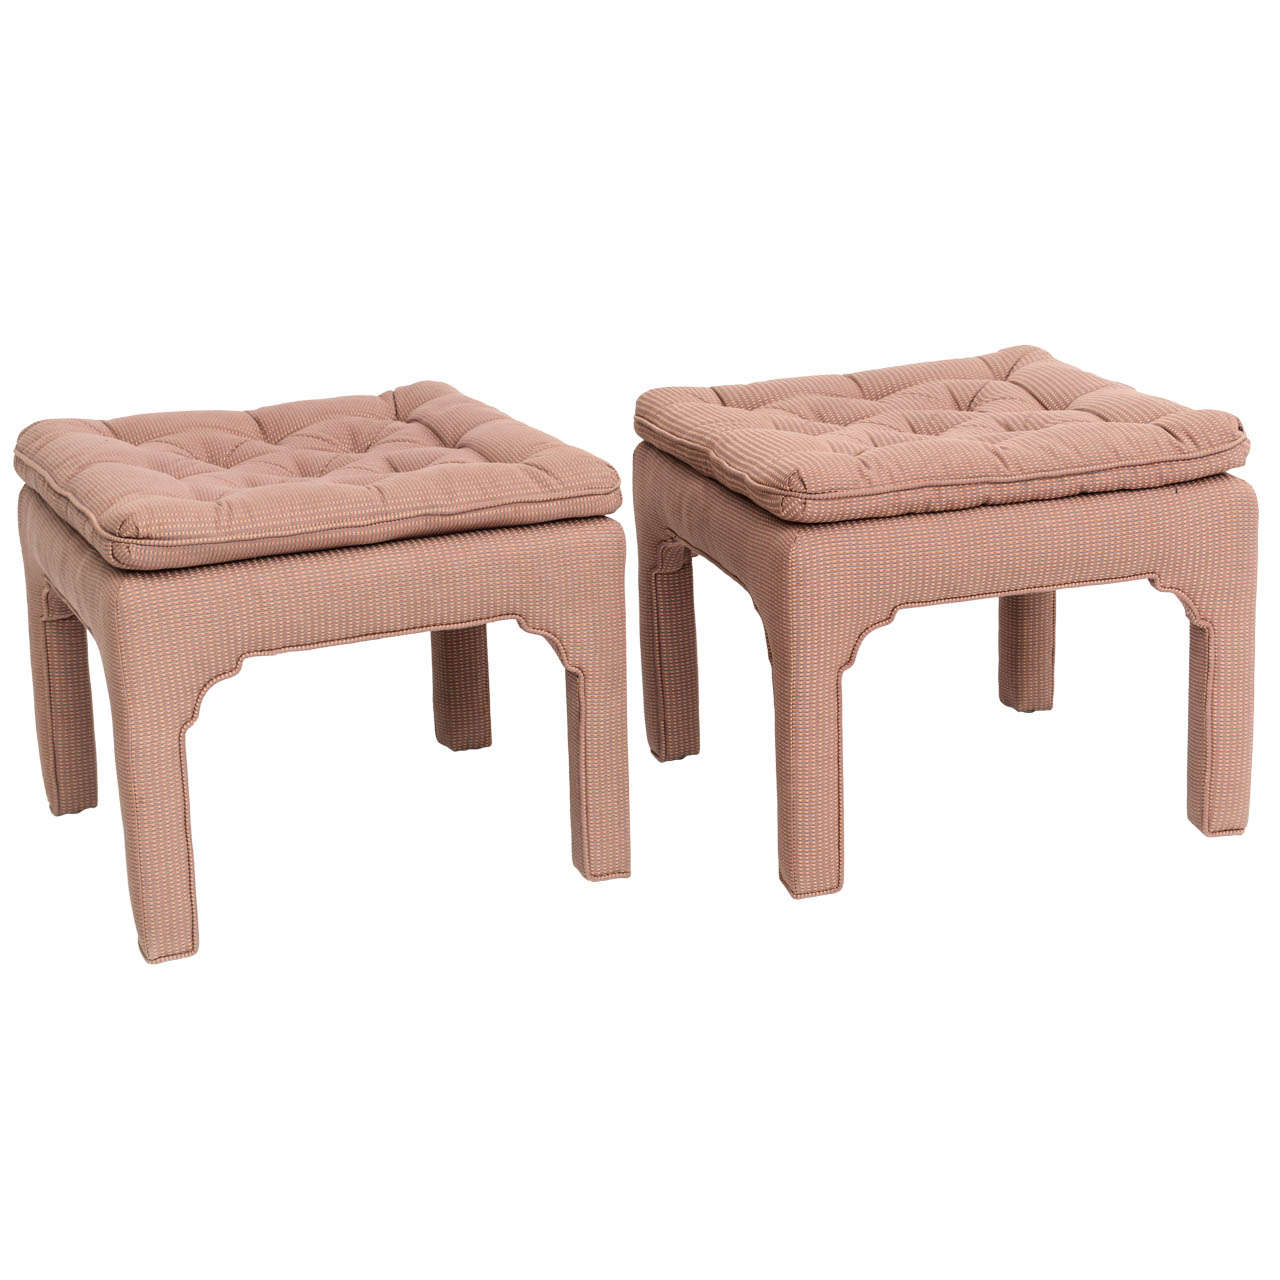 Pair Of Milo Baughman Style Tufted Upholstered Benches At 1stdibs